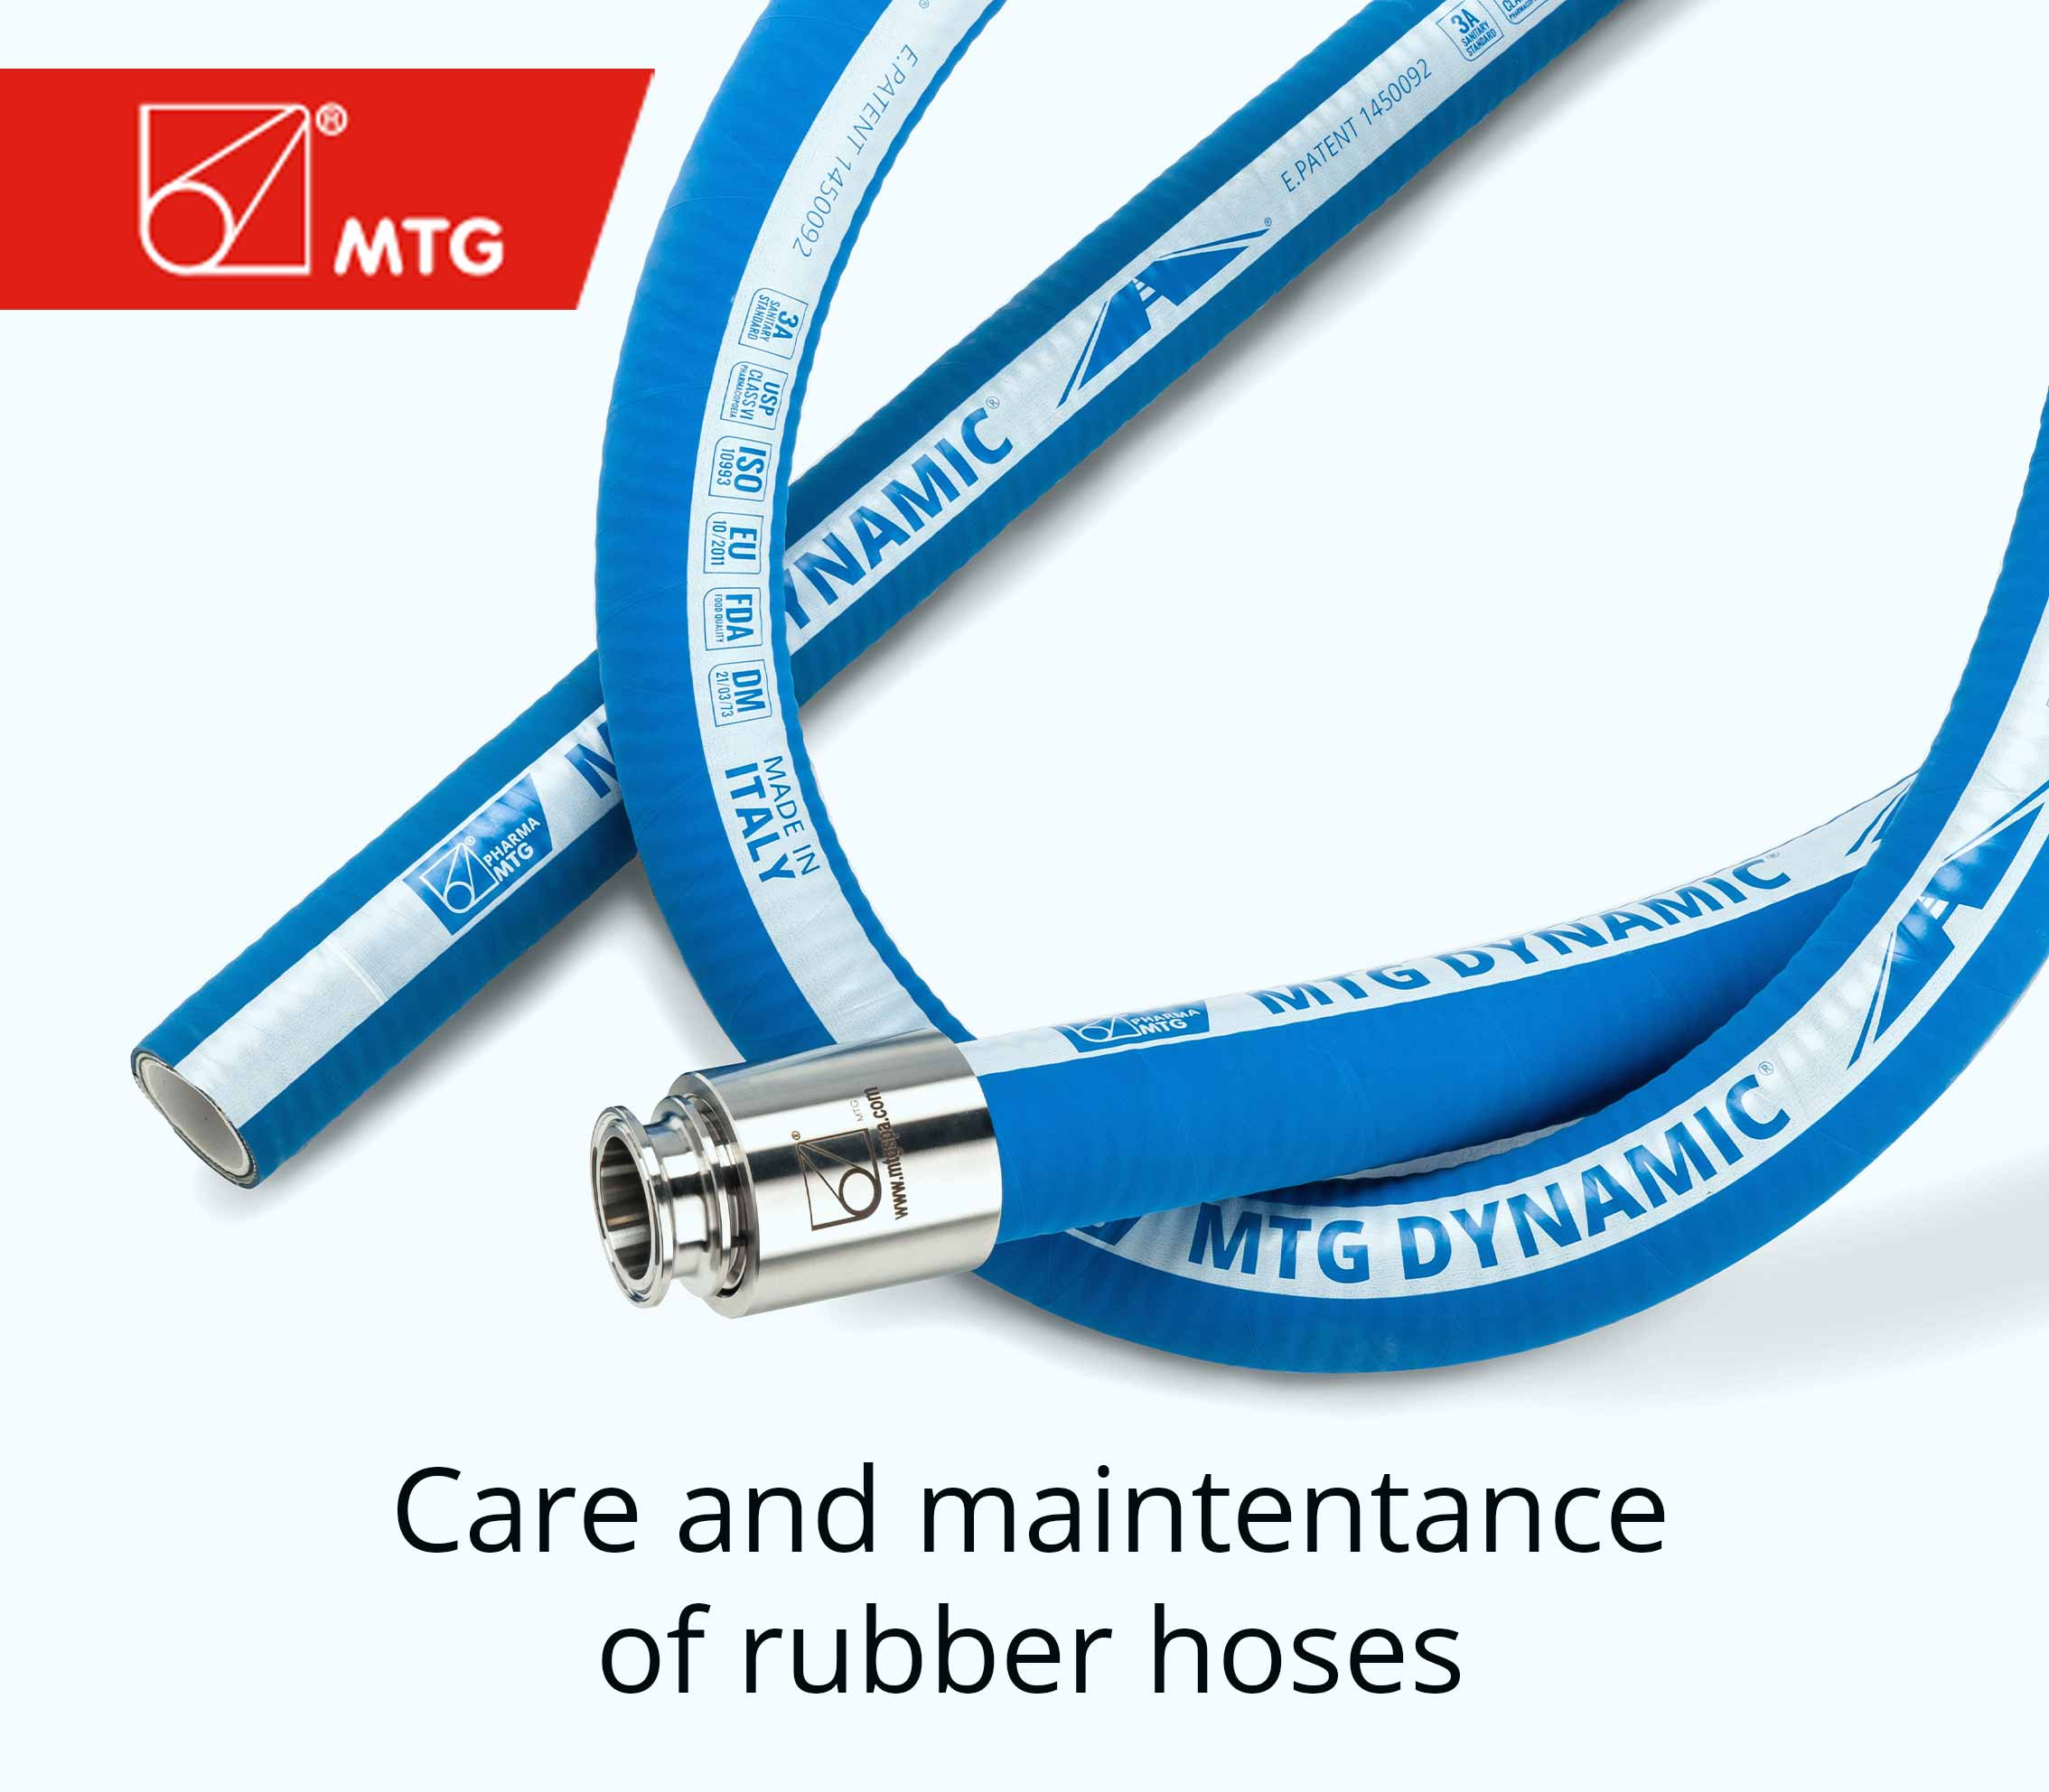 MTG - Maintenance and care of rubber hoses